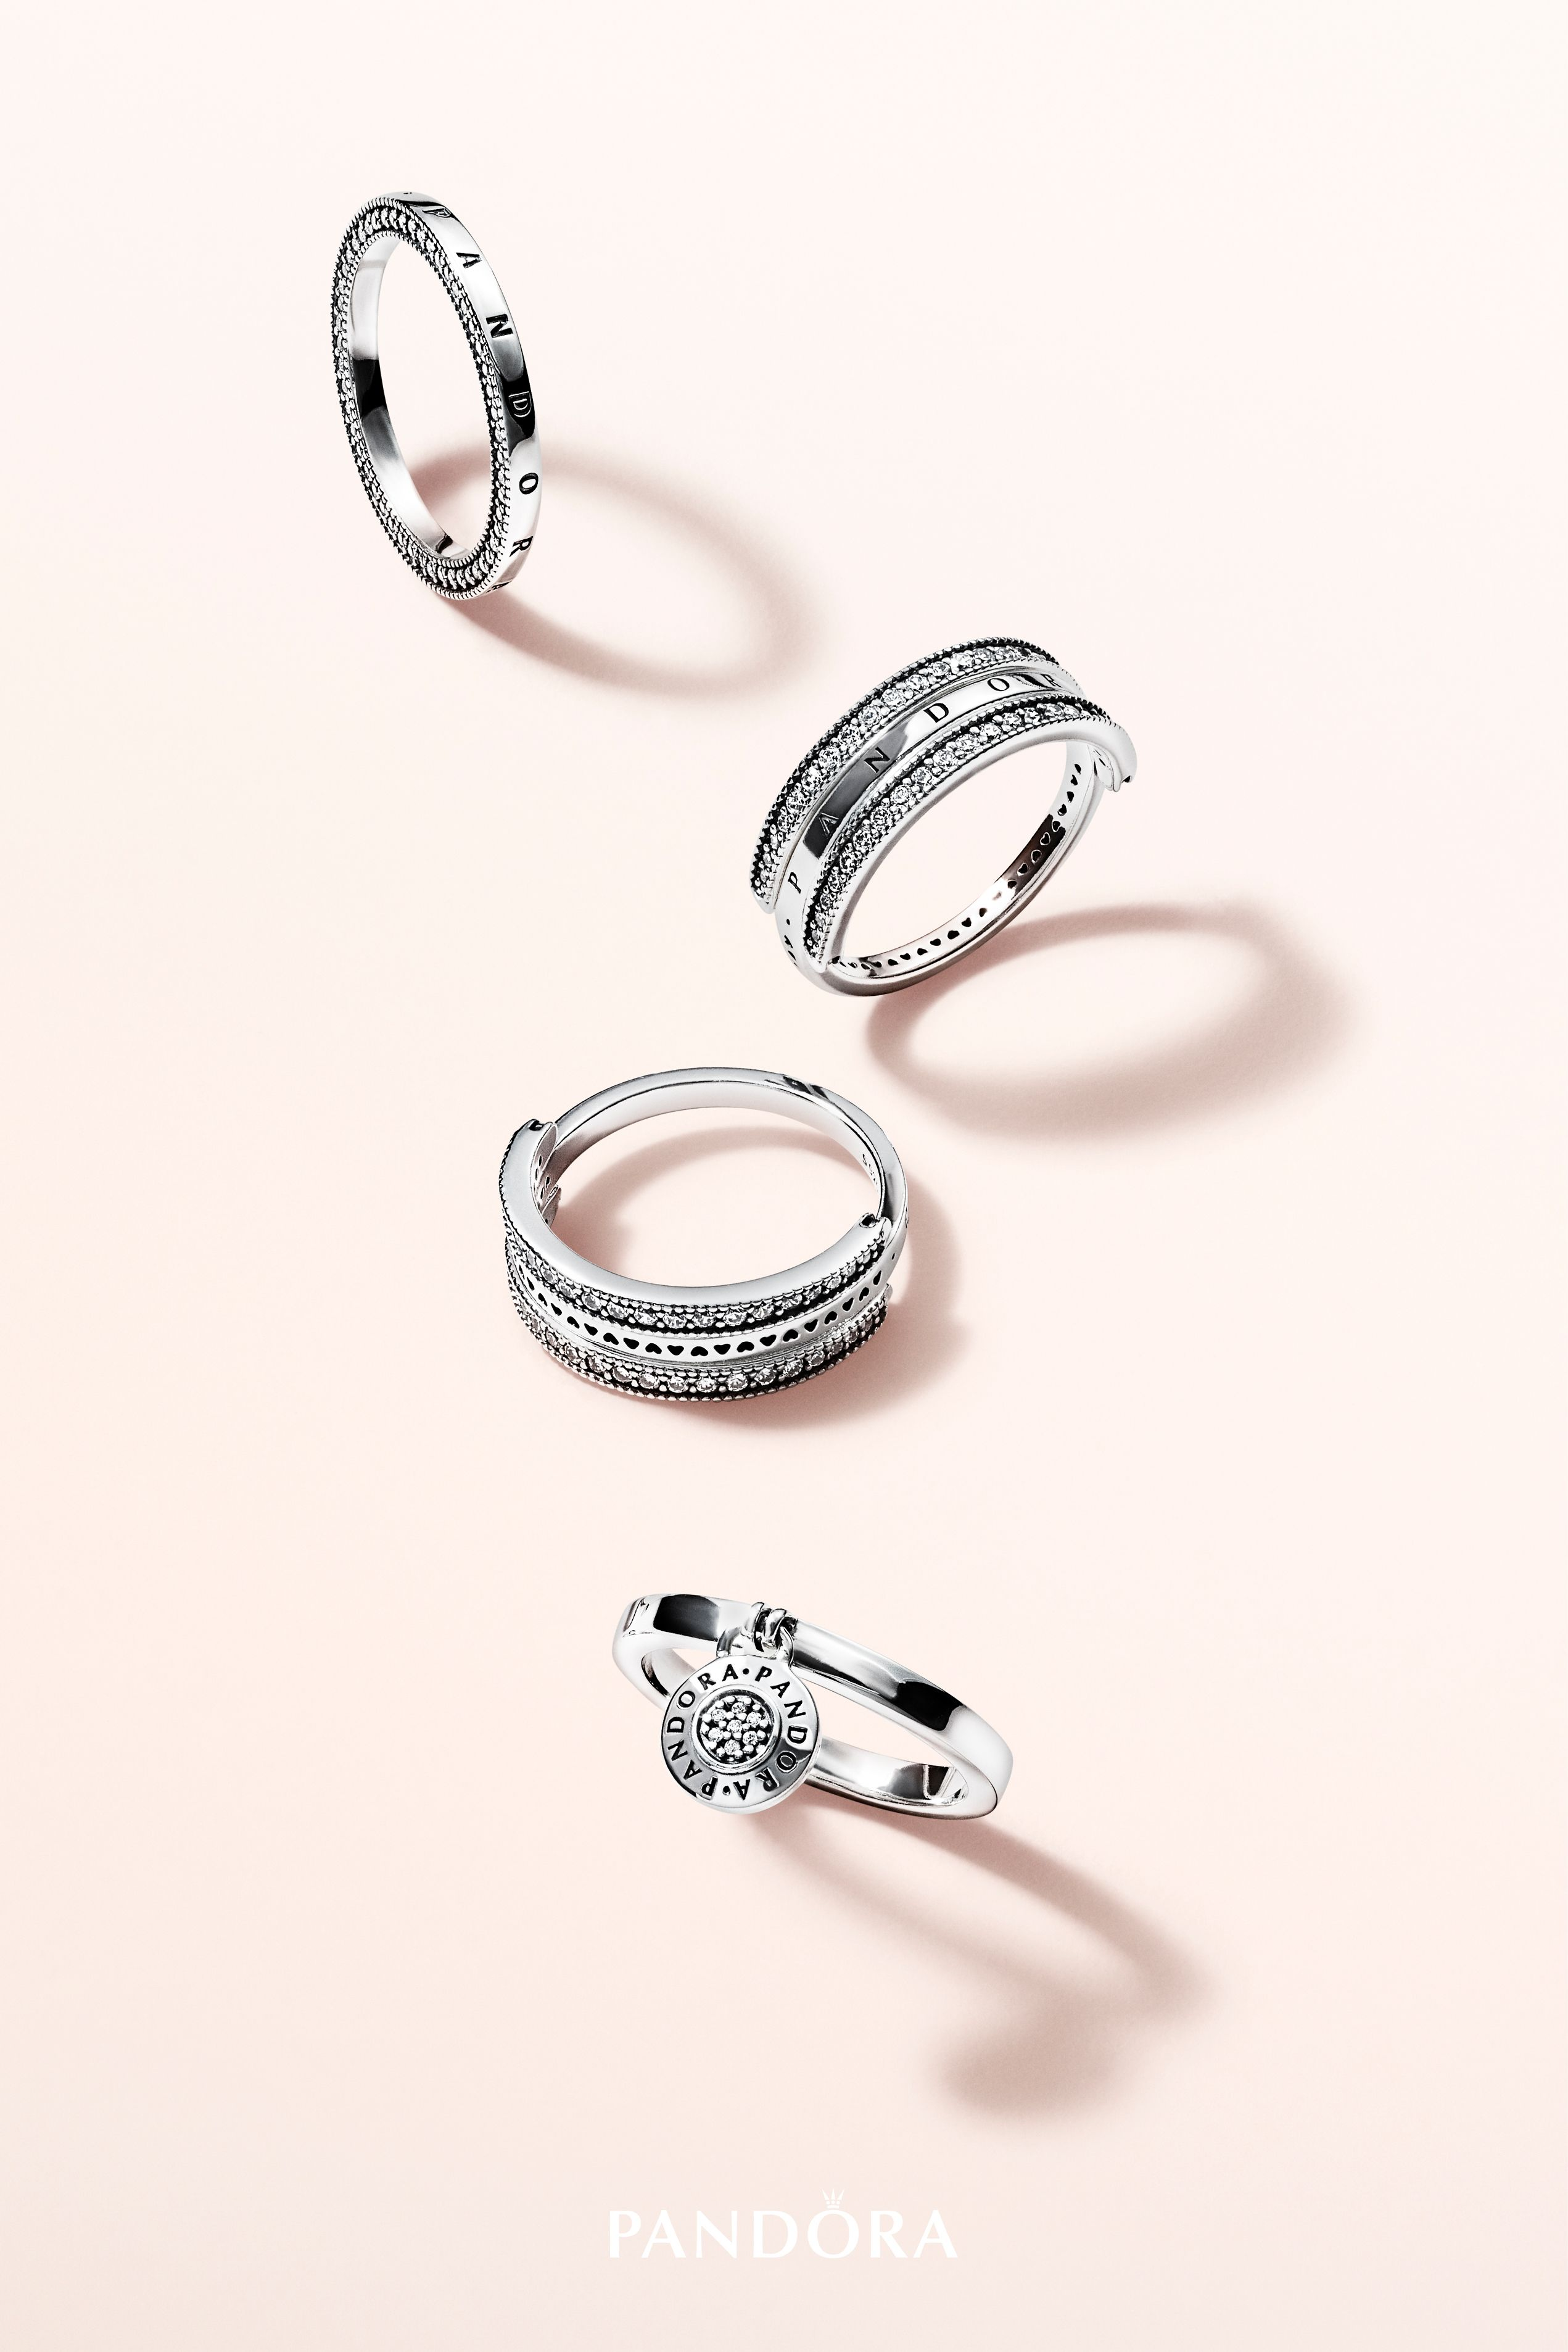 eb02a0057 Make a timeless statement with new rings from the PANDORA Signature  collection. Hand-finished from sterling silver, the pretty pieces are  detailed with the ...